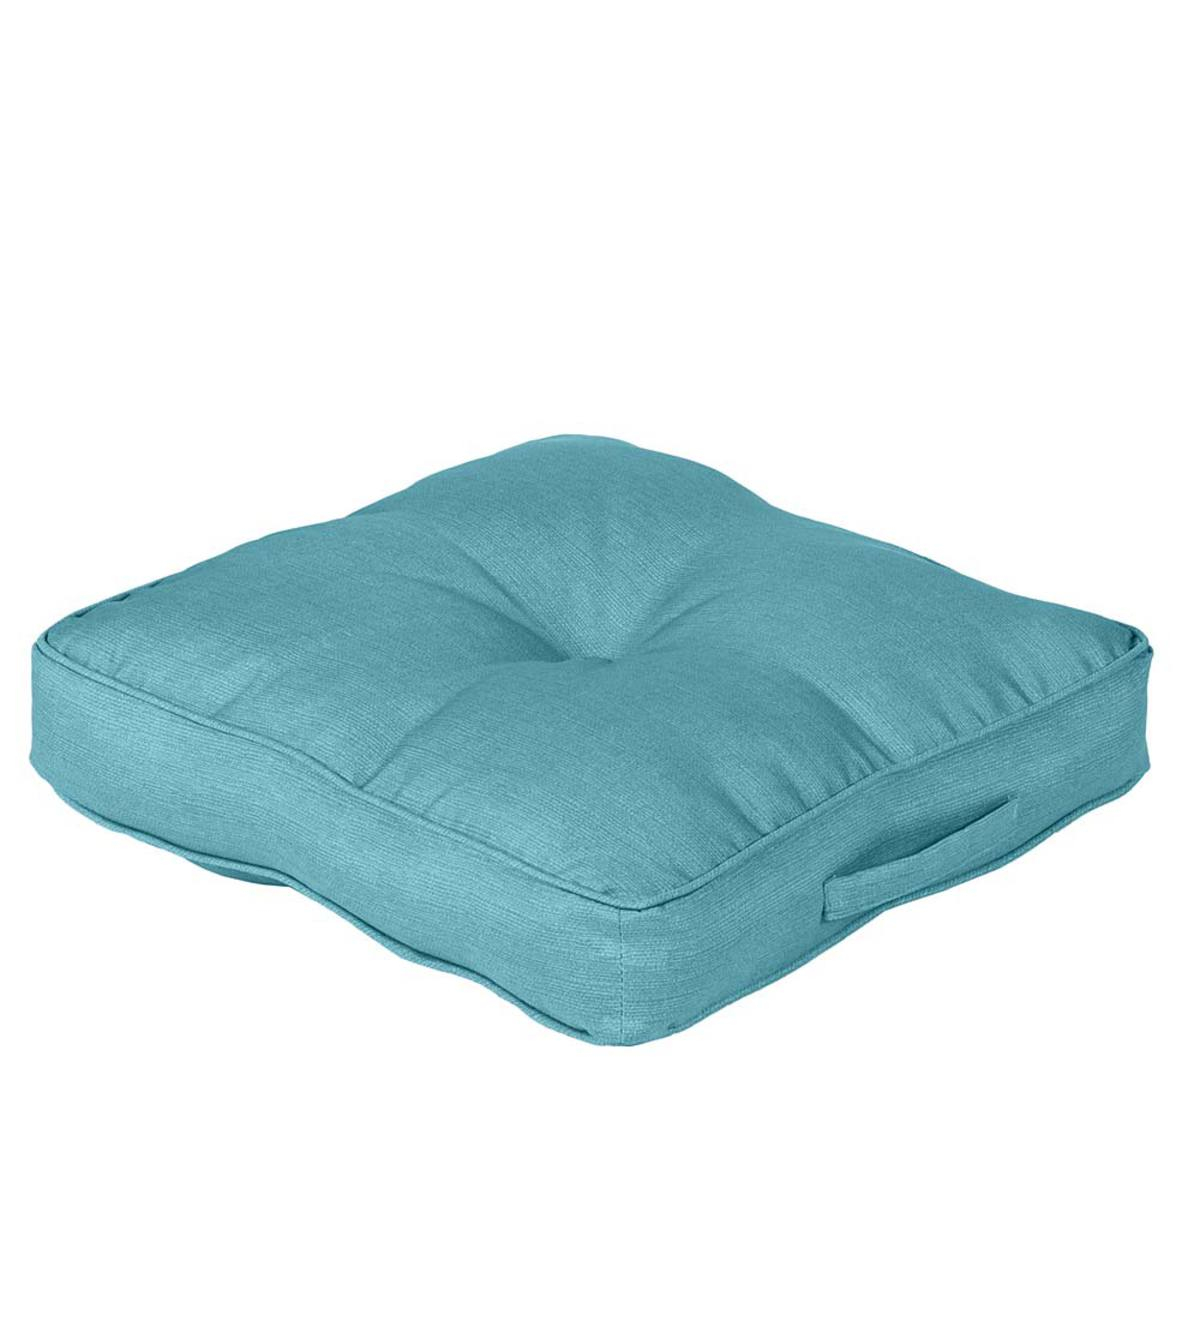 Shenandoah Outdoor Tufted Floor Cushion